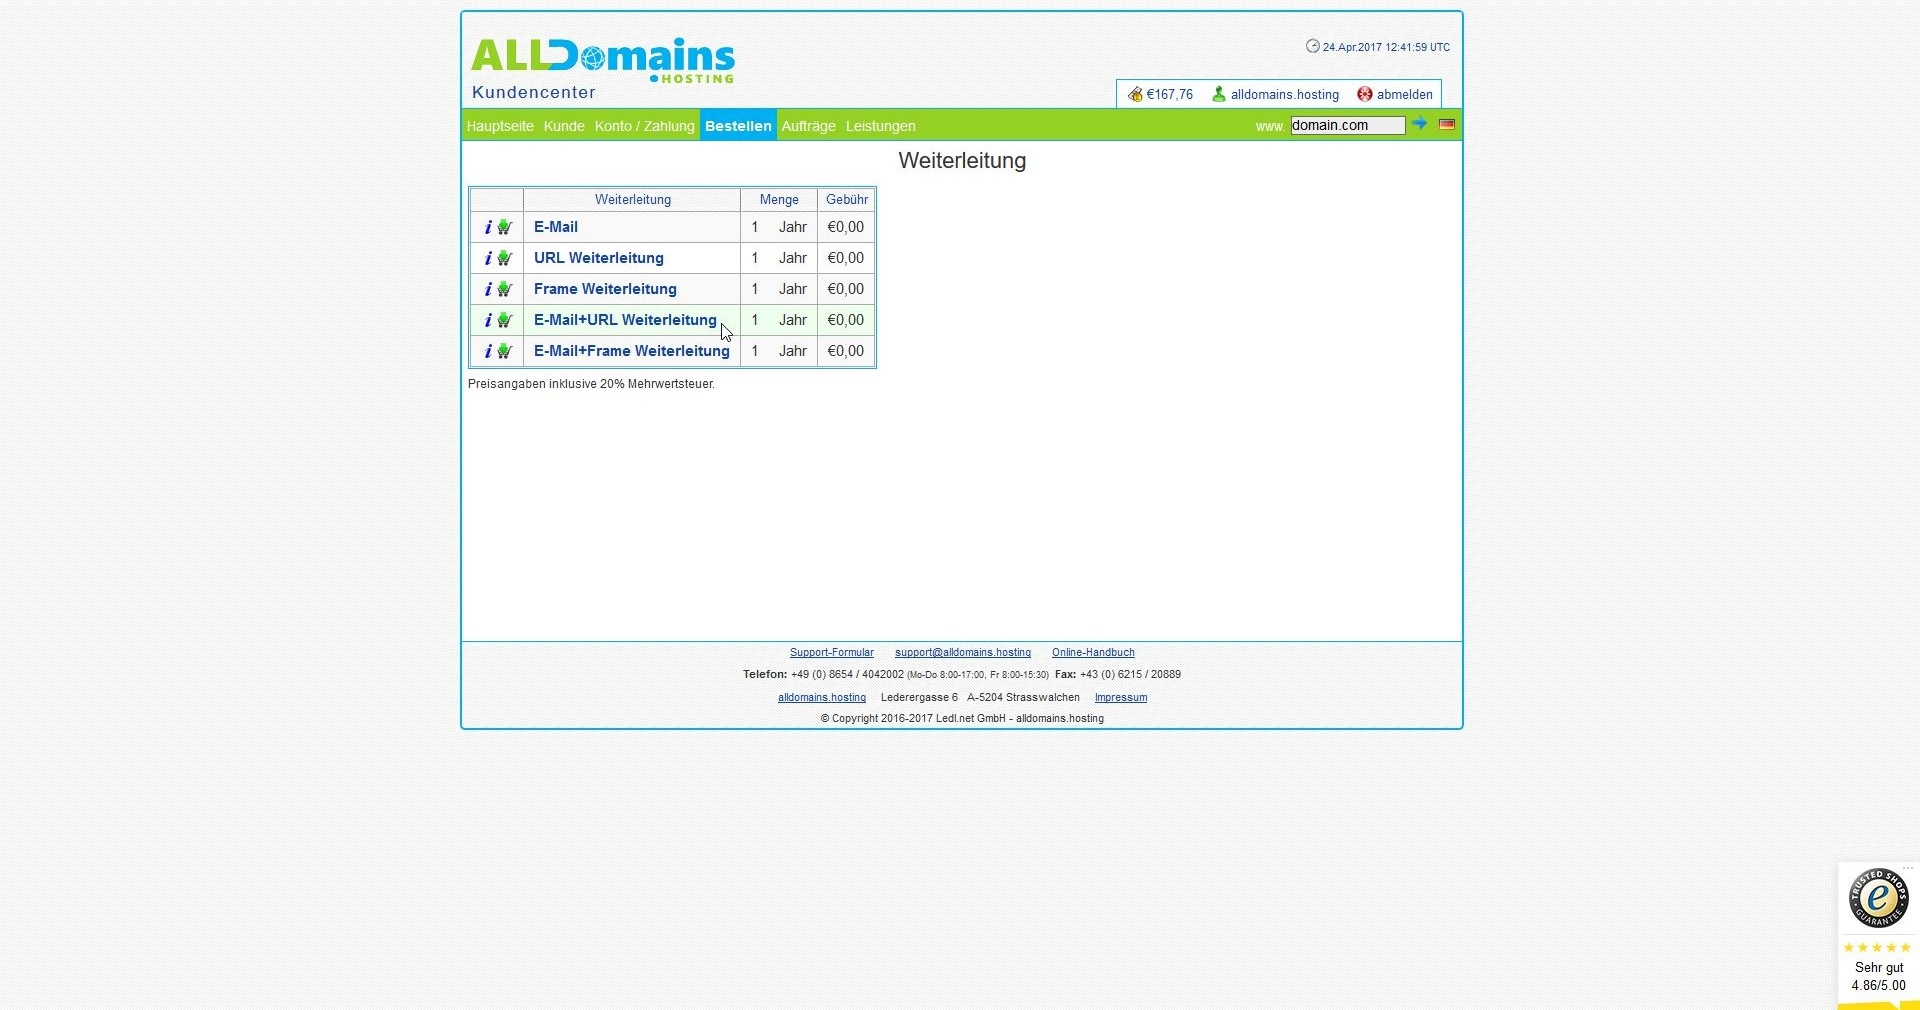 alldomains.hosting Domain/E-Mail Weiterleitung Screen2